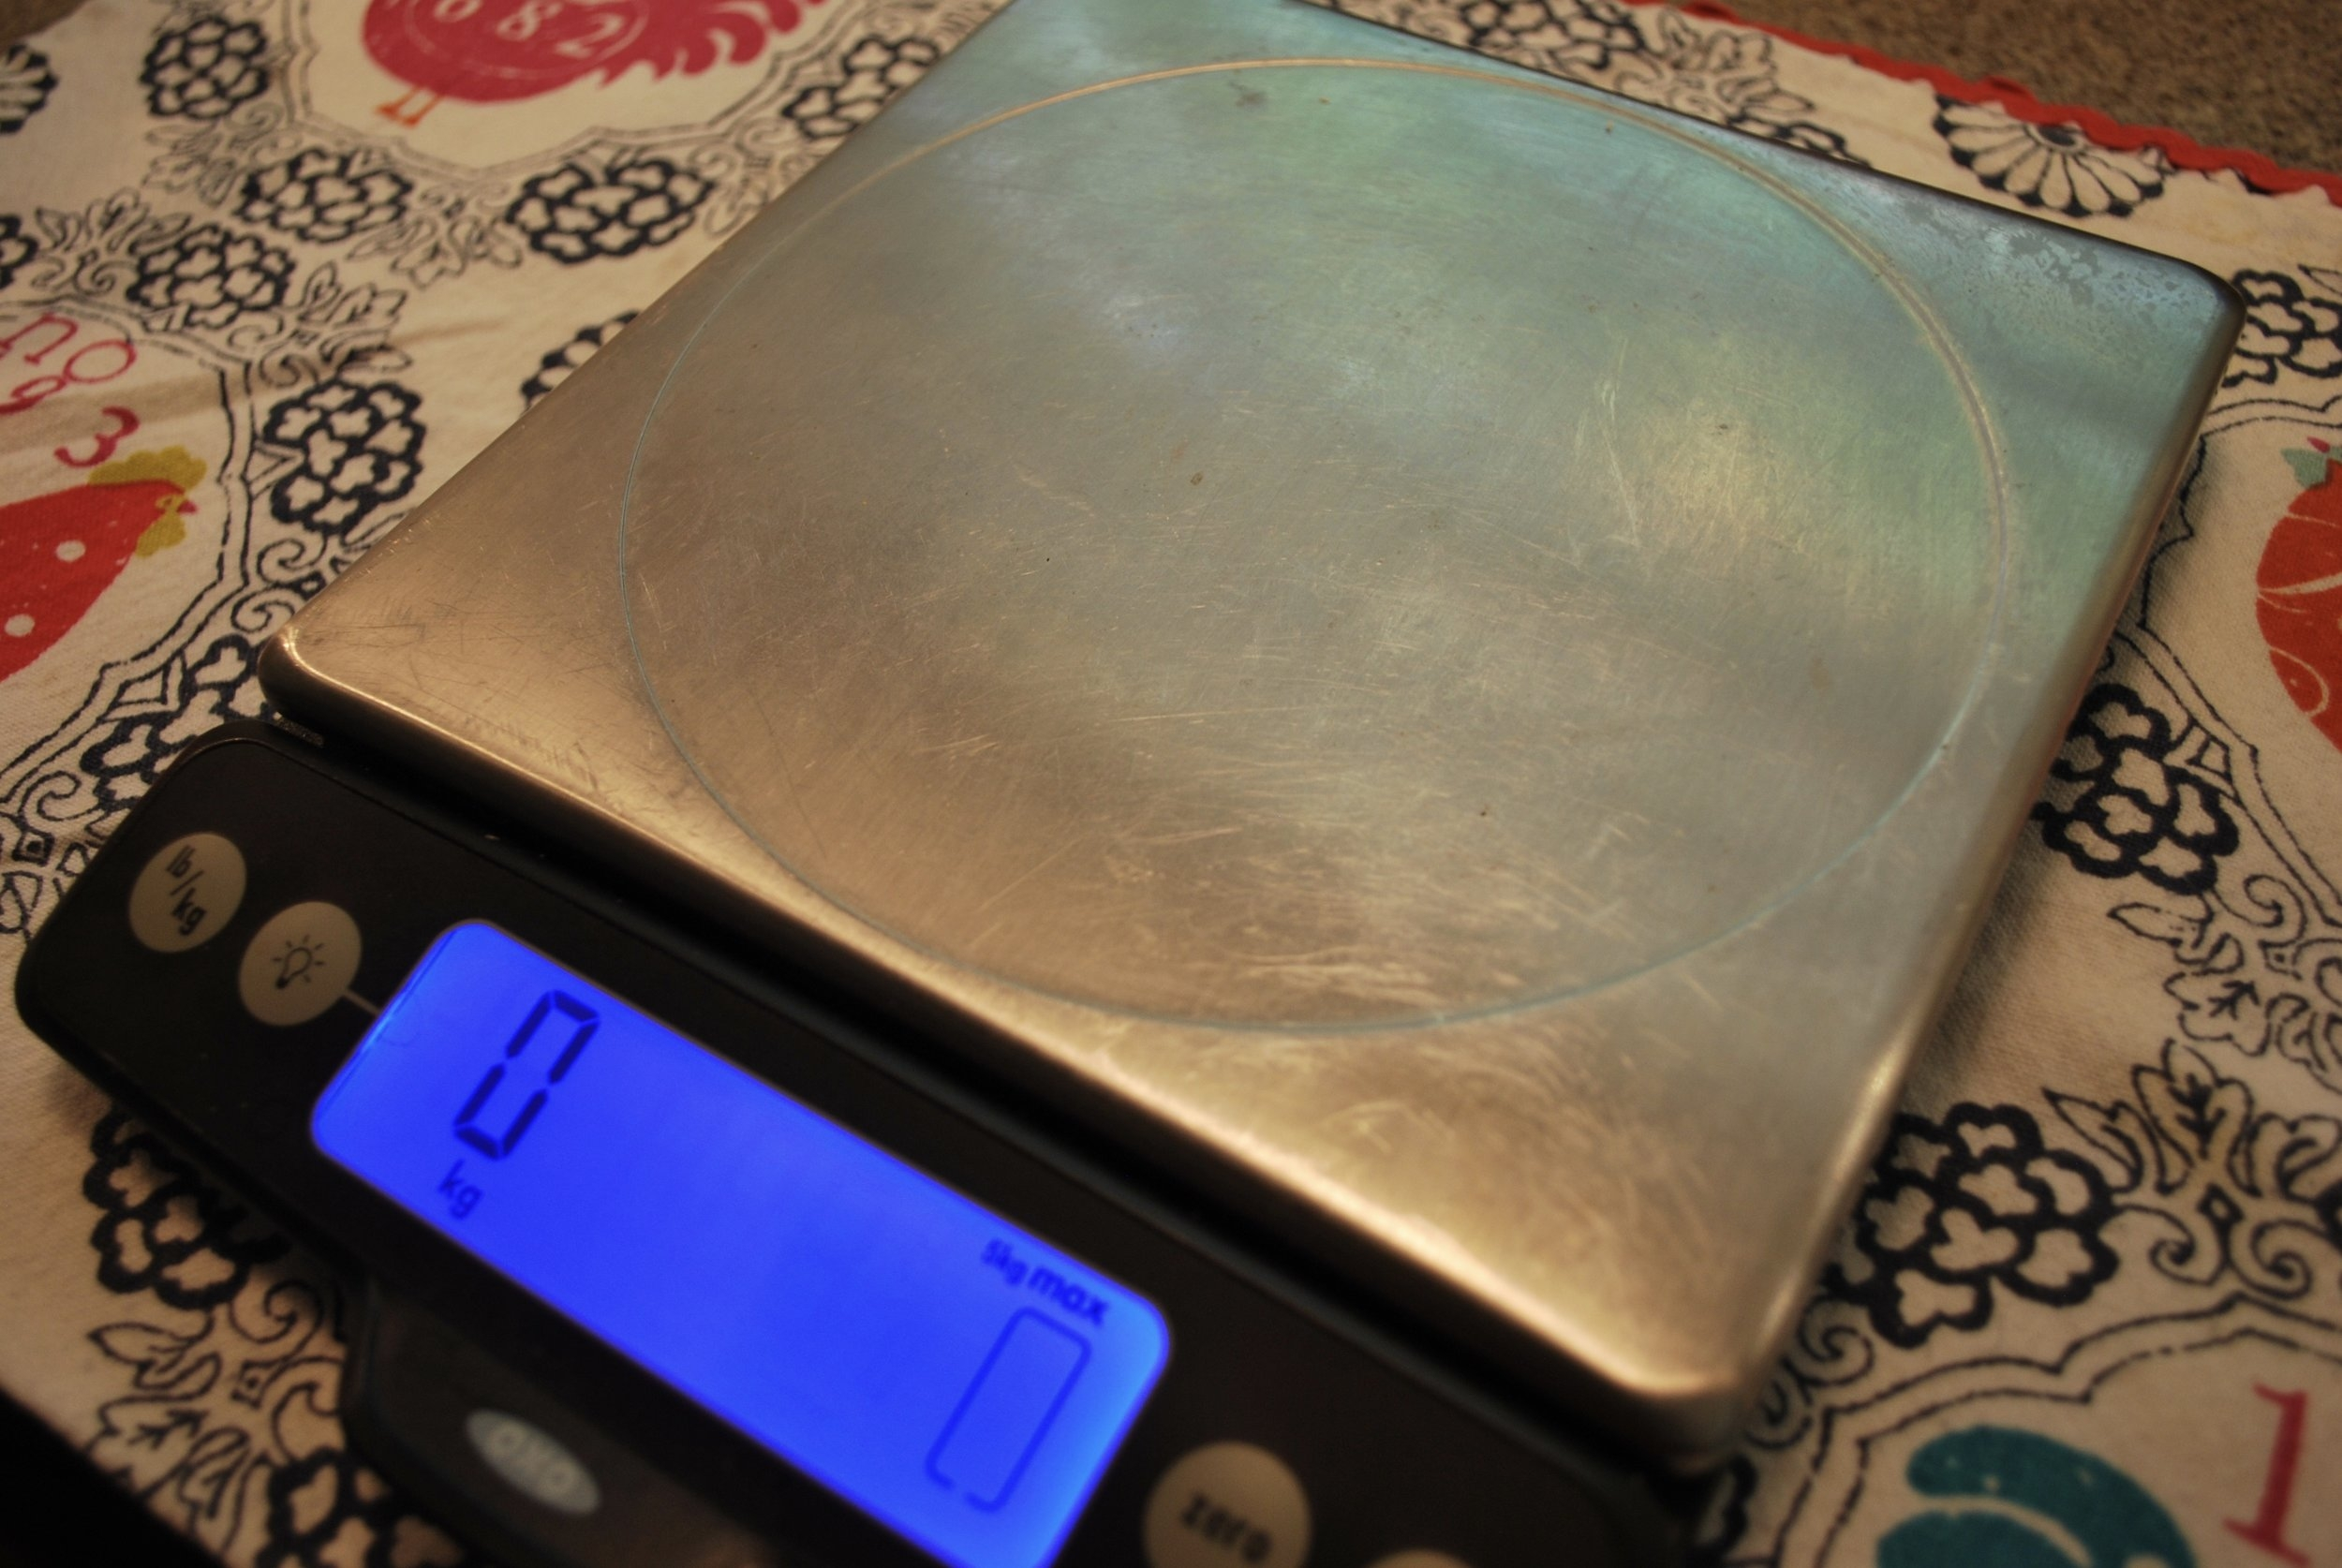 OXO Good Grips Stainless Steel Food Scale wi/Pull-Out Display